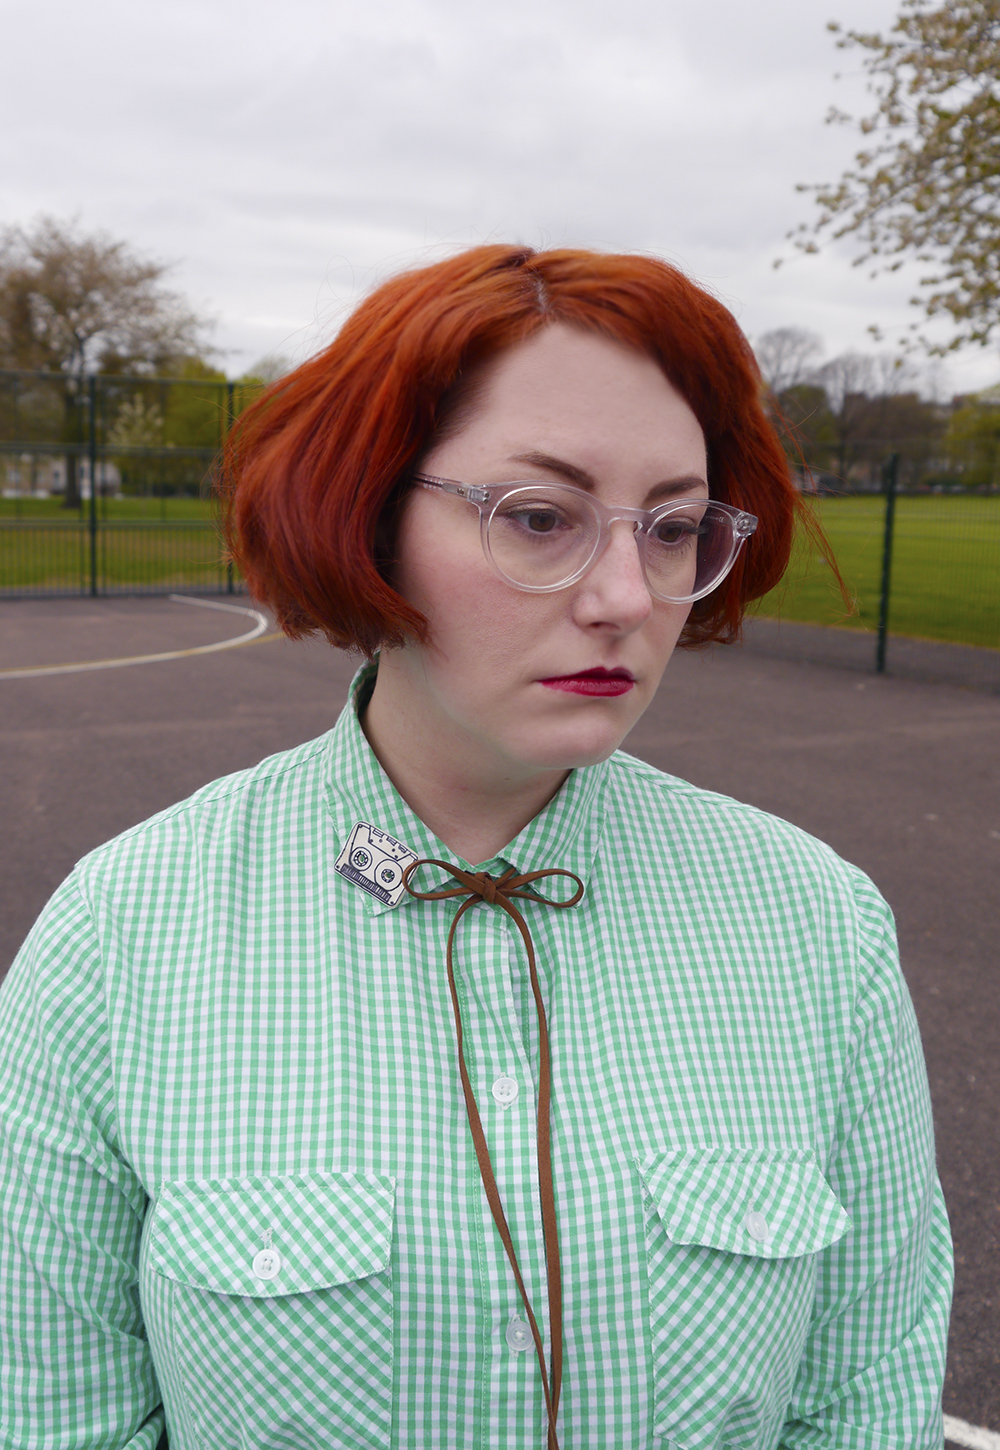 Unlikely Style Icon, blog birthday, Wardrobe Conversations, Scottish bloggers, Scottish fashoin bloggers, Dundee bloggers, Pedro Sanchez, Vote for Pedro, Napoleon Dynamite style, Napoleon Dynamite costume, easy costume idea, film costume, movies costume idea, charity shop find, checked shirt, green gingham shirt, little lies boho necklace, cassestte brooch, cowgirl style, western style, simple wild west outfit, new look jeans, zara brown boots, bad hair day, #seewithiolla, iolla glasses, Iolla clear Bell frames